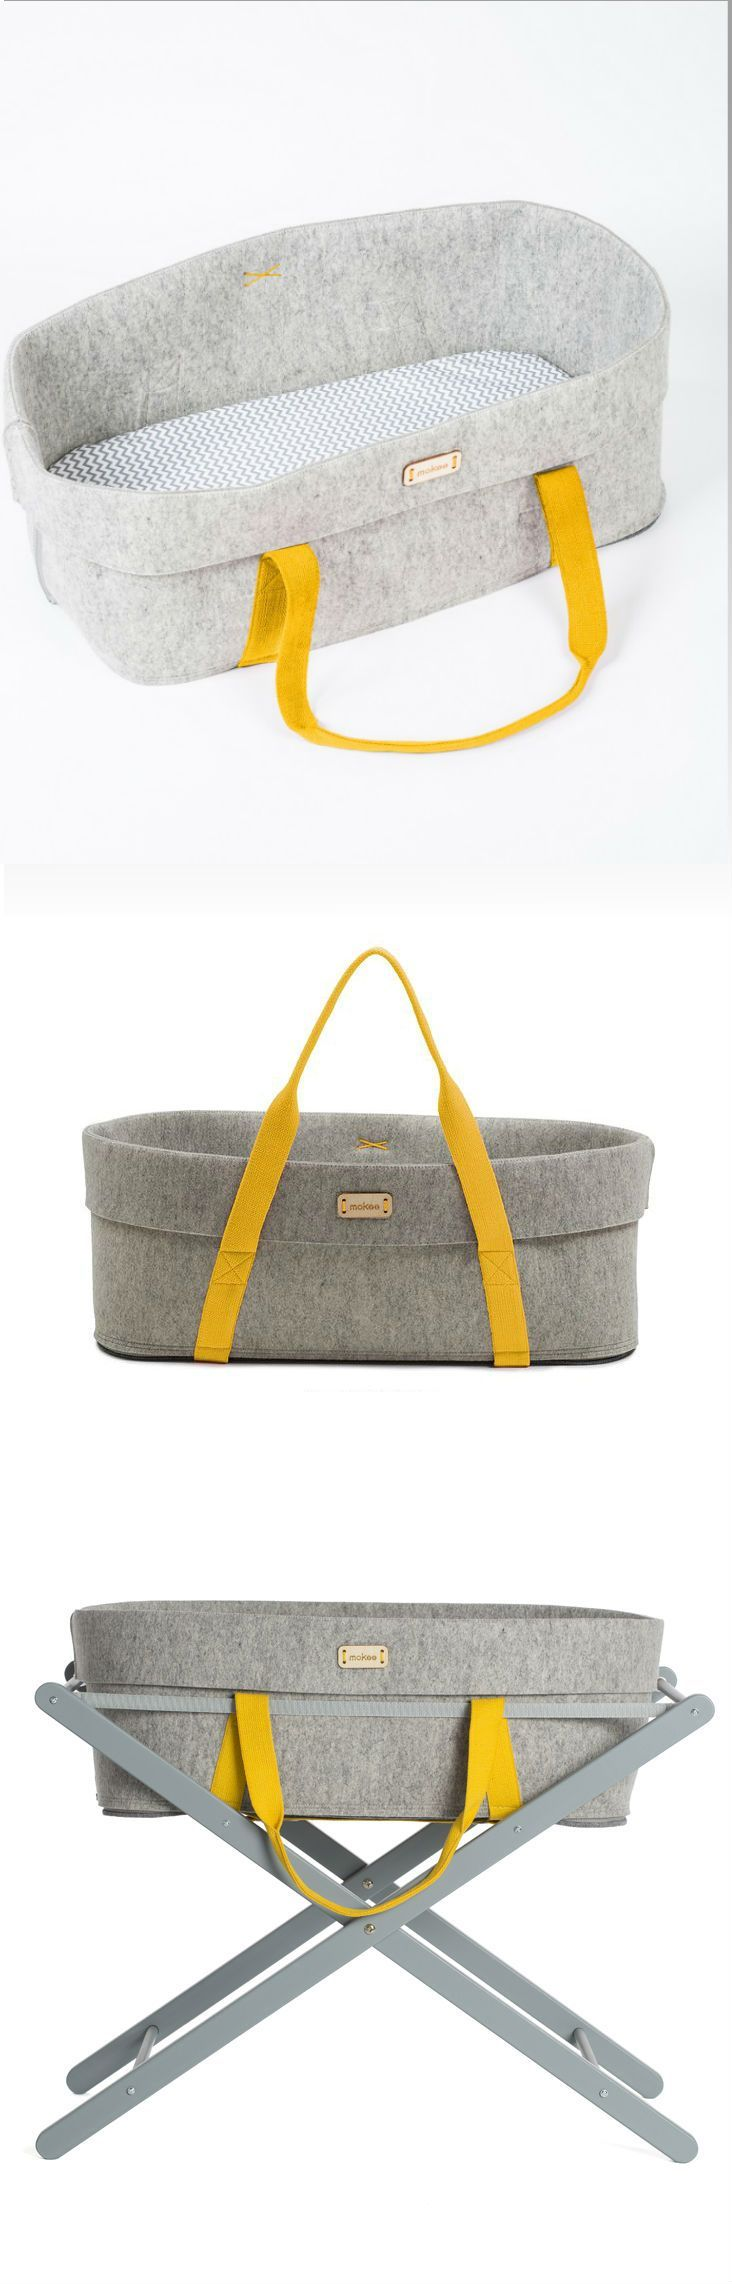 Moses basket by moKee, wool felt bassinet for your nursery #woolnest #nursery #bassinet  | Pinned by www.thebonniemob.com | British designed unisex baby and kids fashion clothing brand for stylish little ones. The bonnie mob ship worldwide from the UK.